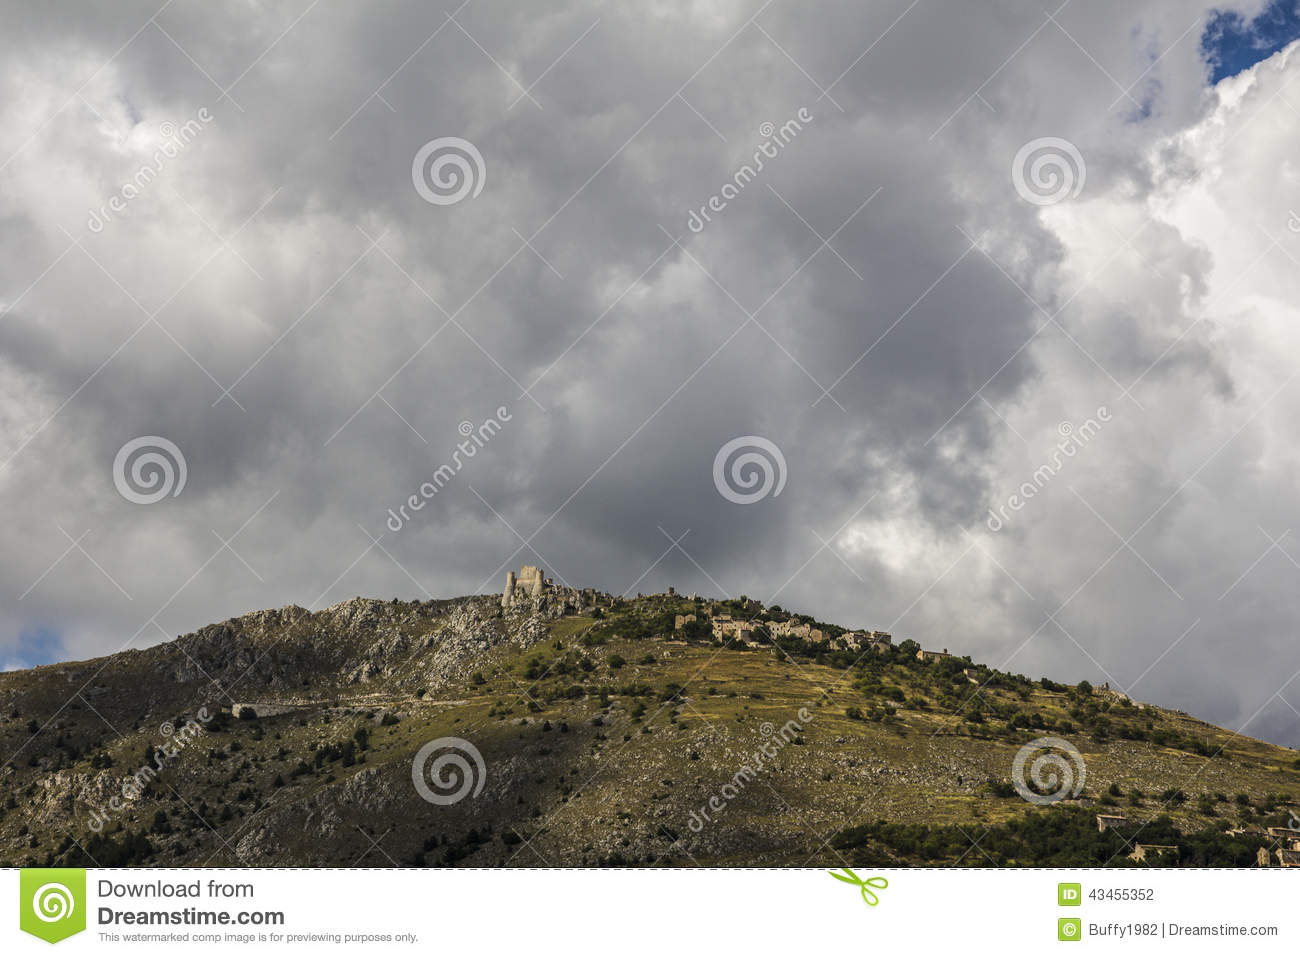 Fortress and village Calascio, Apennines, Italy